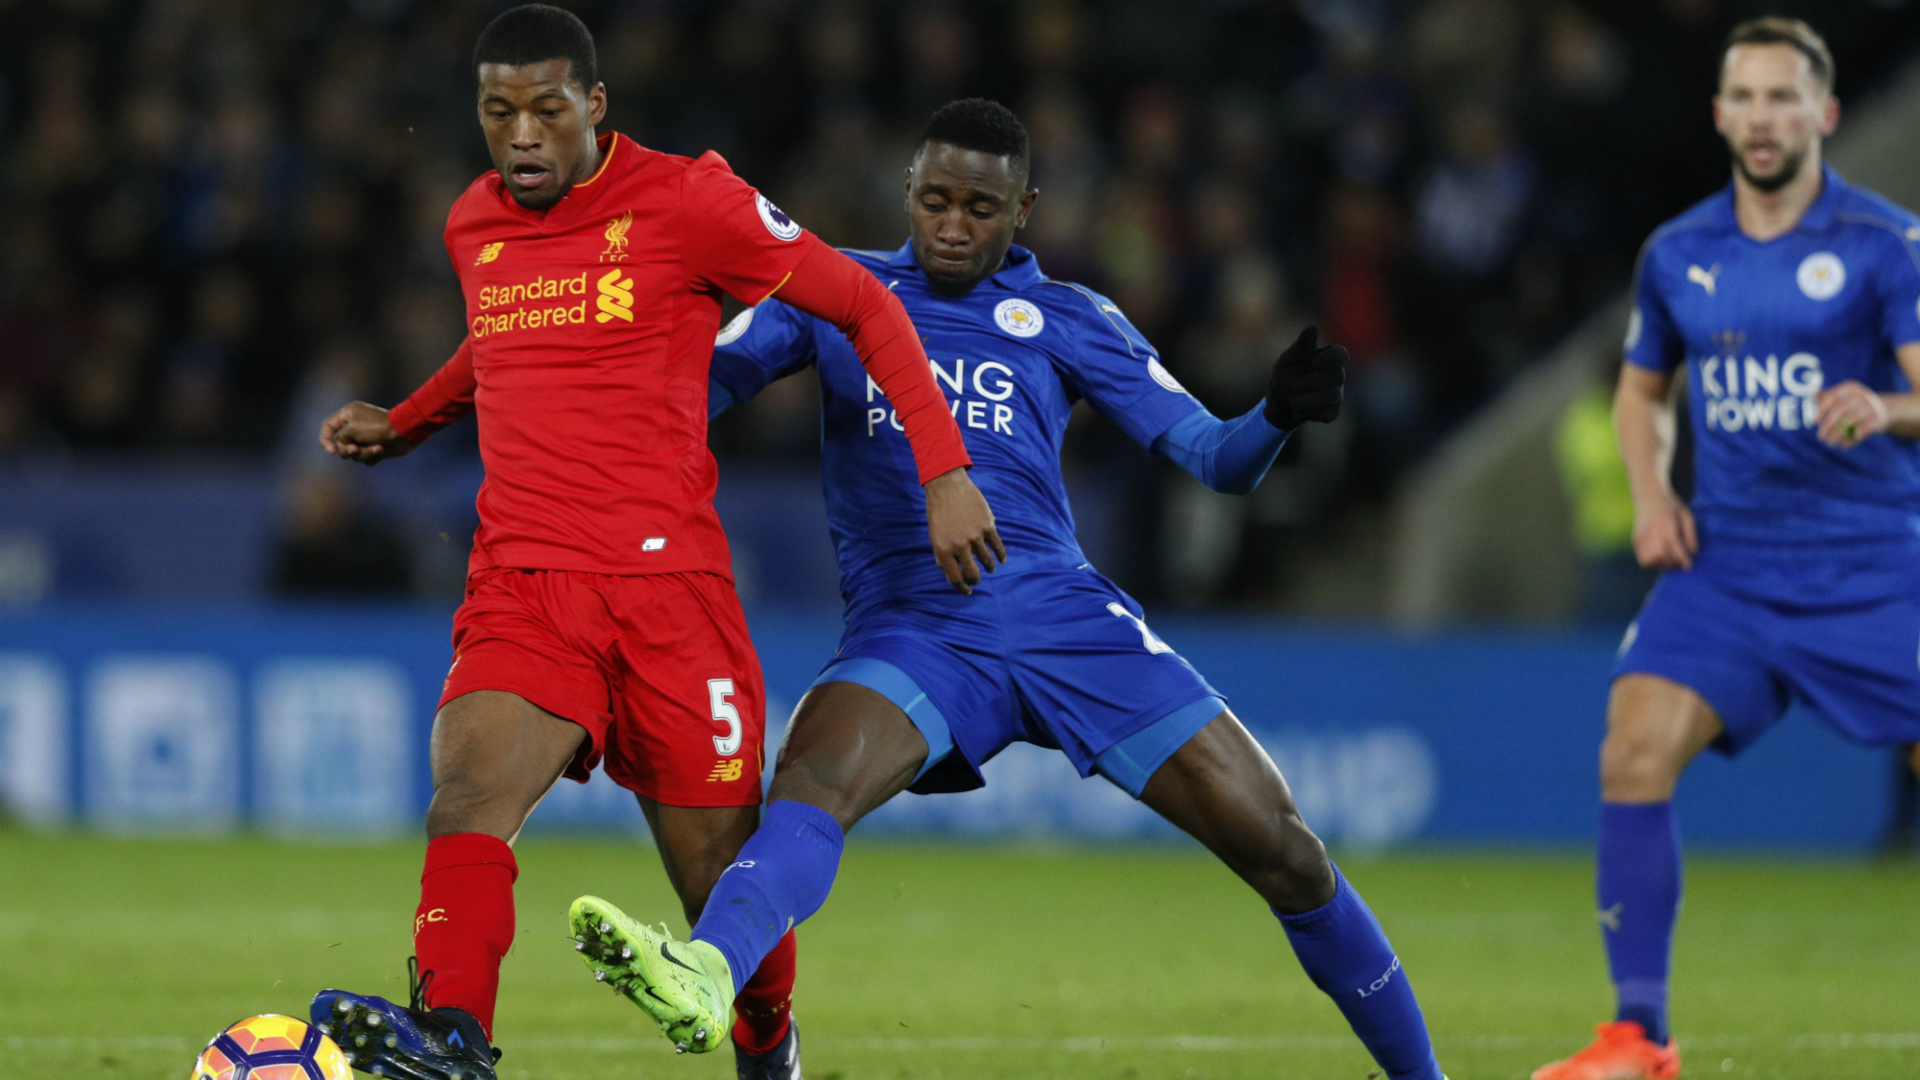 Georginio Wijnaldum, Wilfred Ndidi, Leicester City - Liverpool, Premier League, 02272017